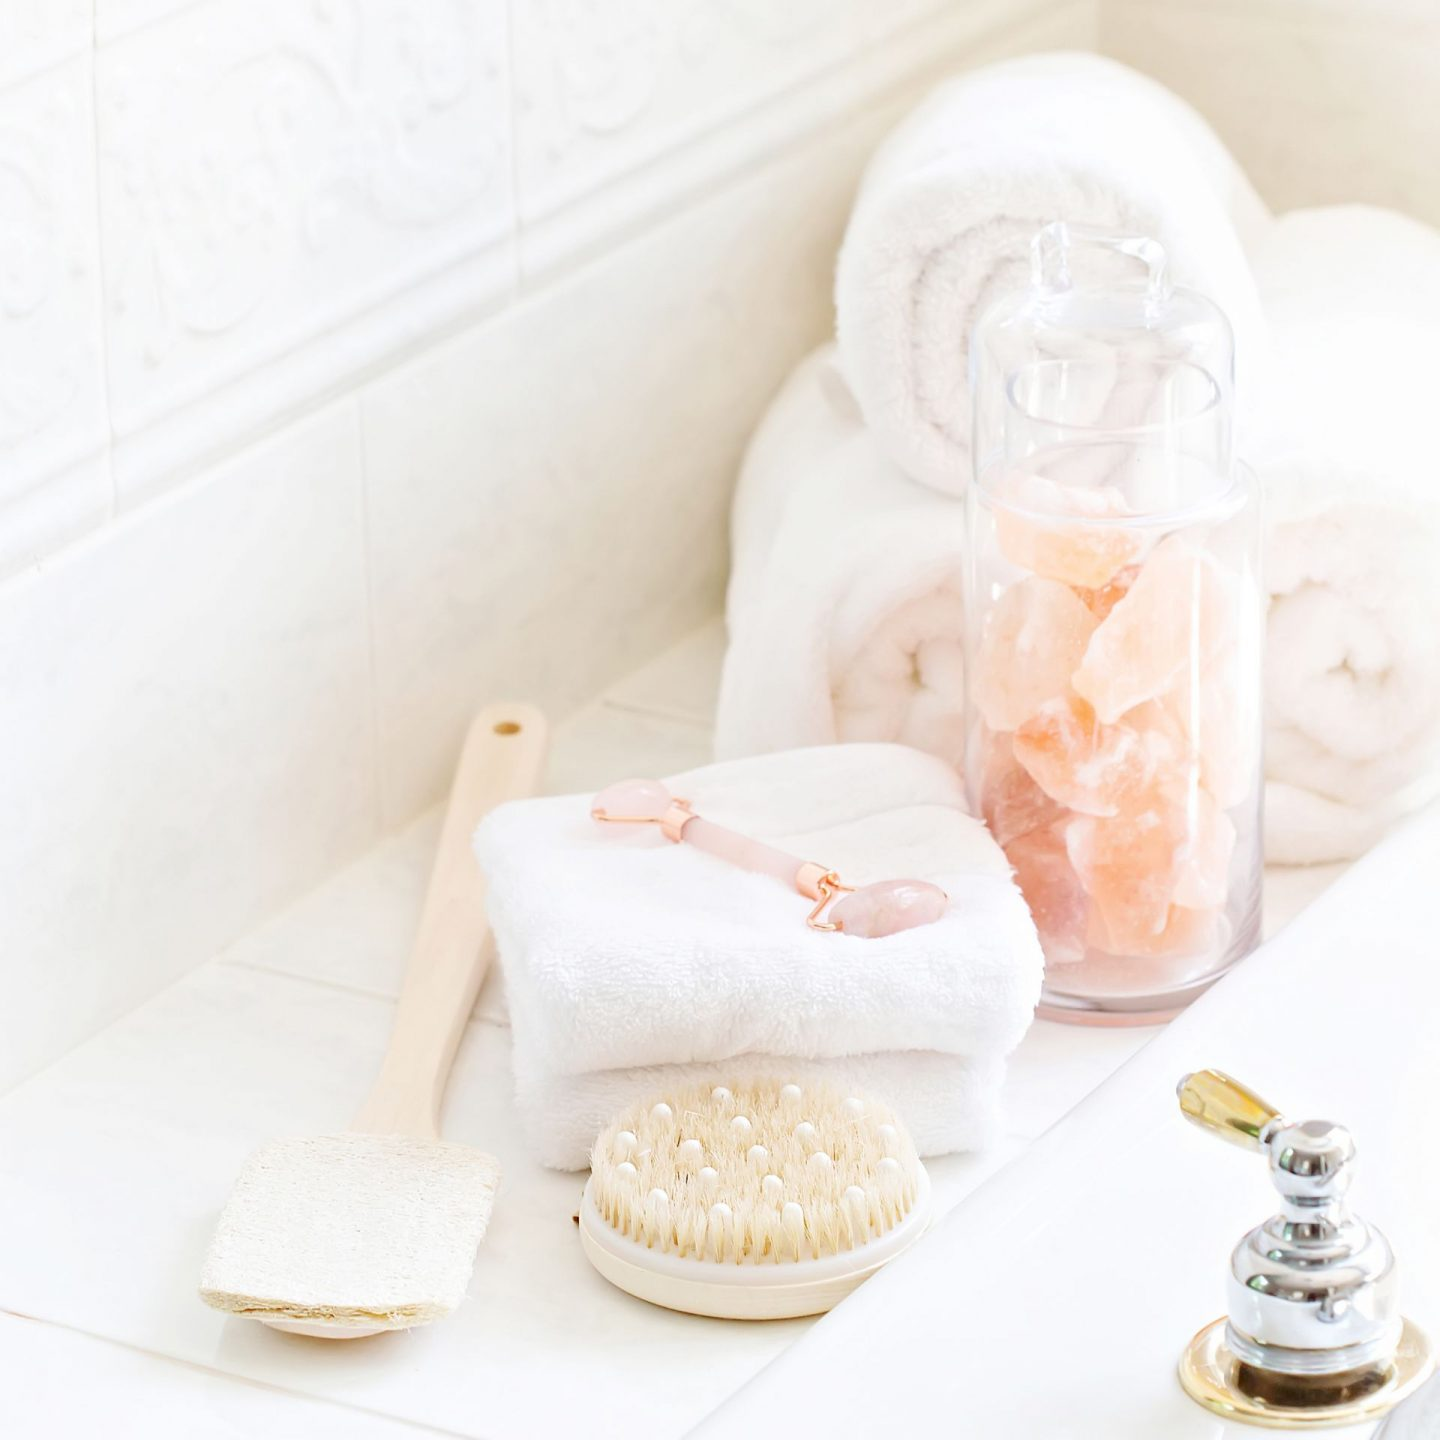 Beauty Rituals To Try // Beauty Self-Care Ideas // Skincare Tips // Spa Day At Home Tips // How To Have A Spa Day At Home // Pamper Yourself Tips | Beauty With Lily #beautyrituals #selfcareideas #beautyselfcare